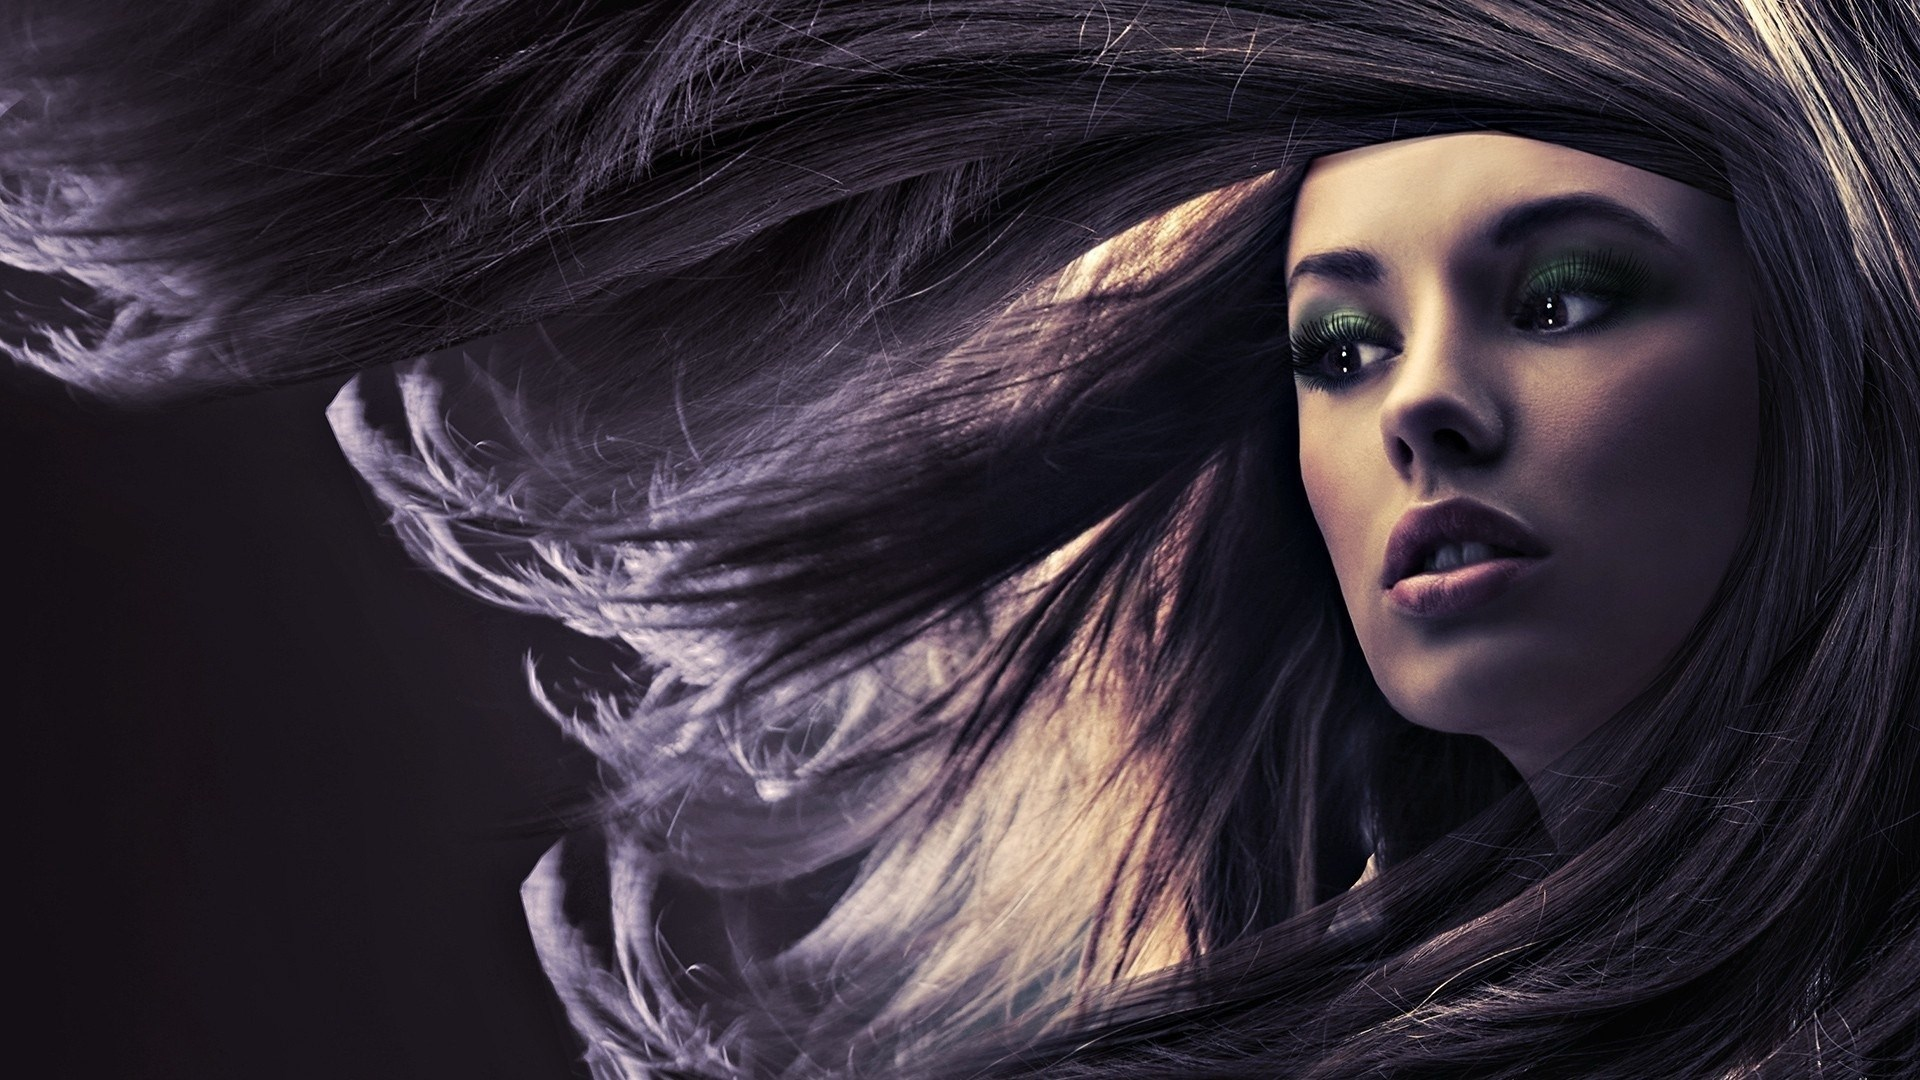 argan oil effect on hair